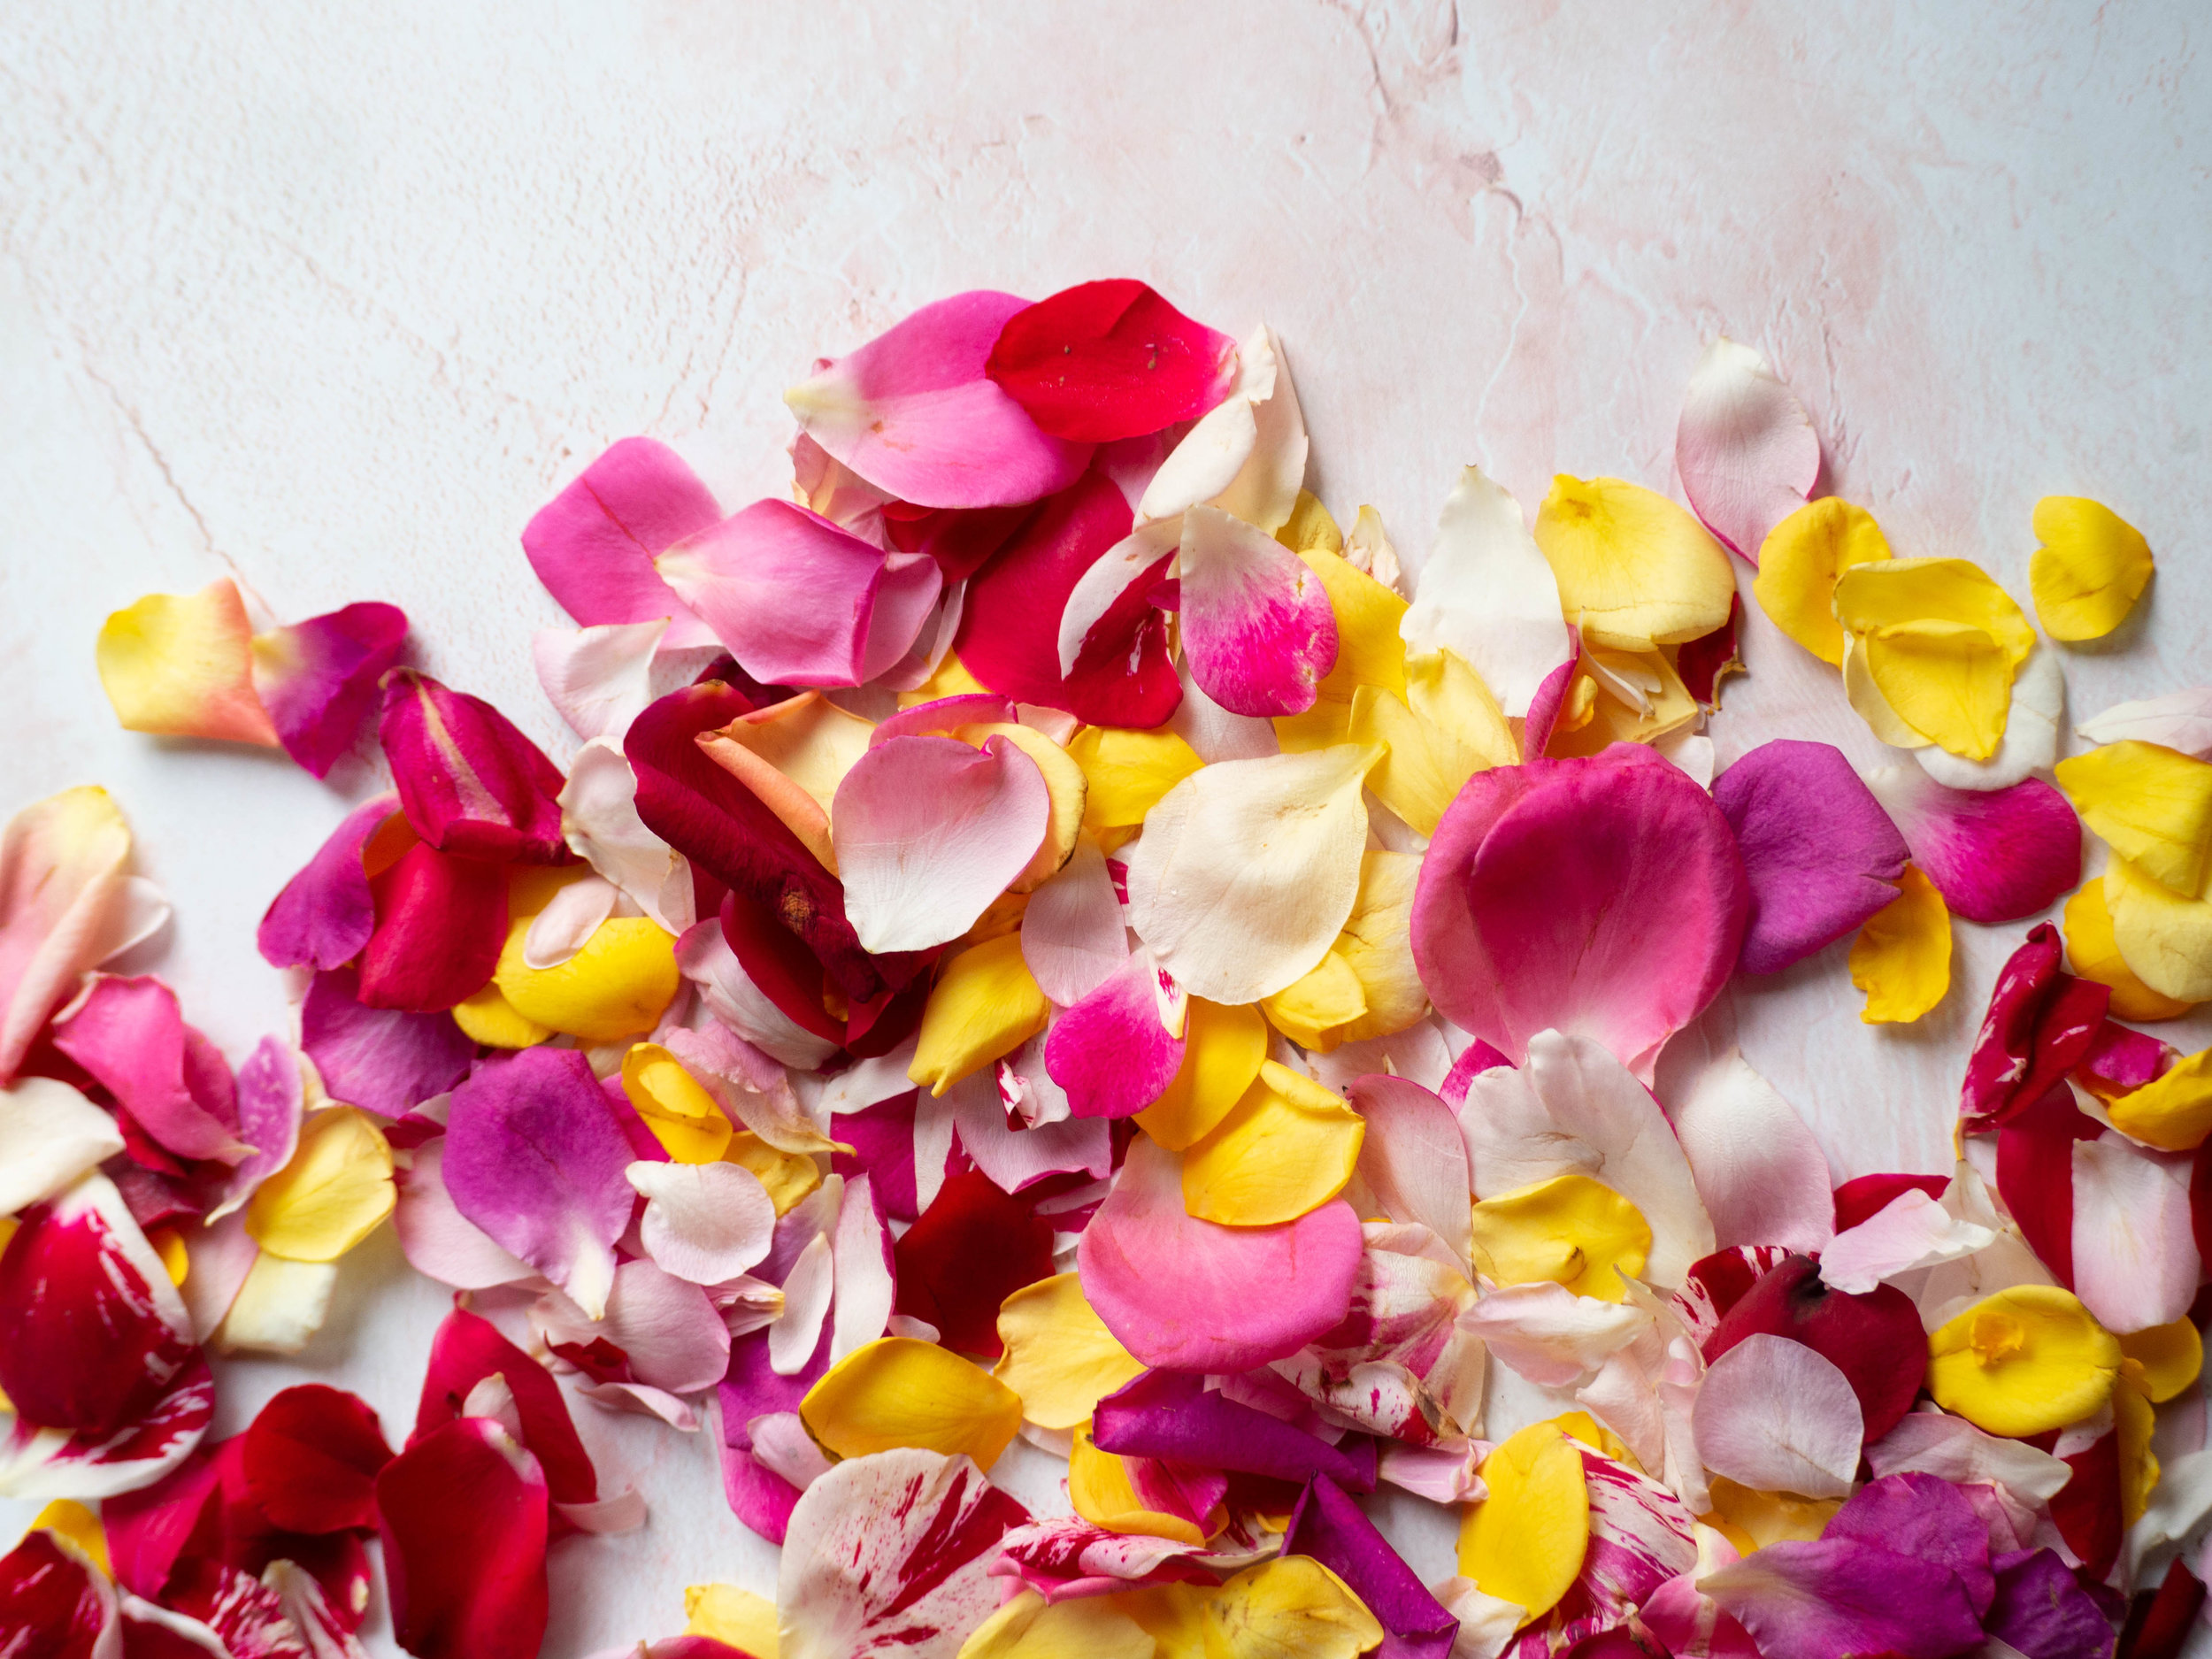 Fresh Edible Rose Petals